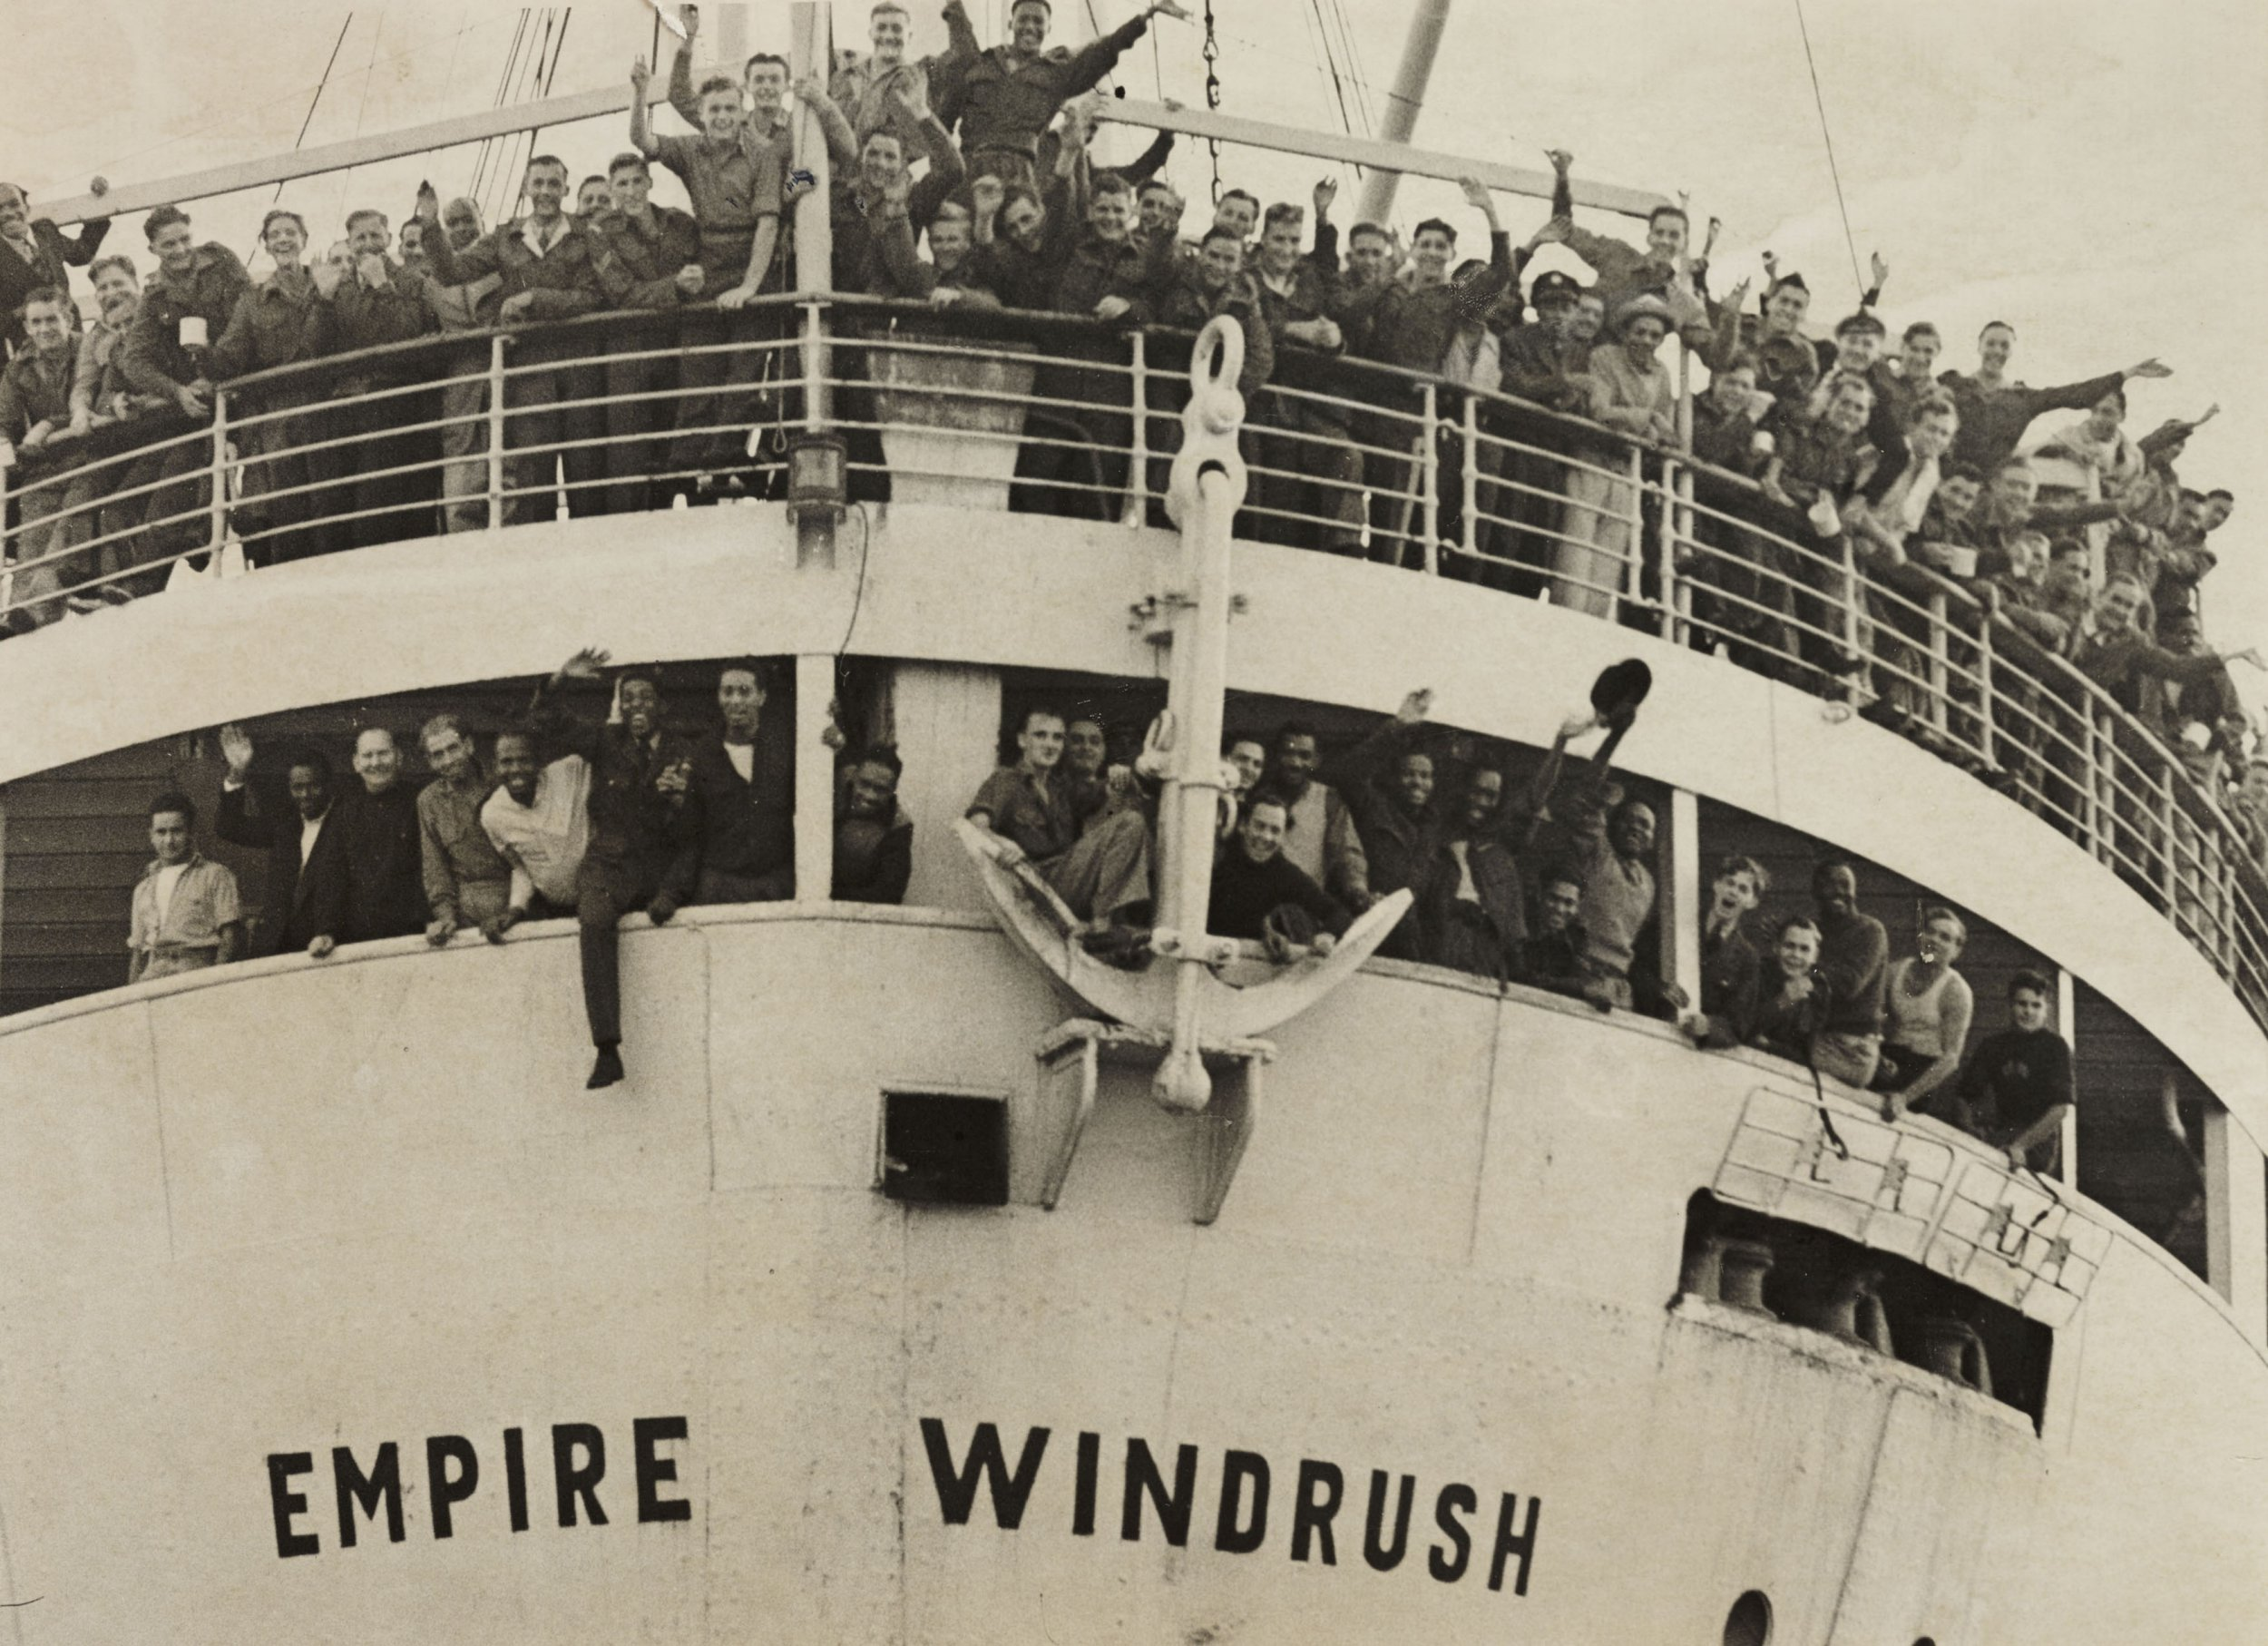 UNITED KINGDOM - JUNE 02: The 'Empire Windrush' arriving from Jamaica, 1948. A photograph of the 'Empire Windrush' at Tilbury docks, having sailed from Australia via Jamaica, taken by Jones for the Daily Herald newspaper on 21 June, 1948. During the war, thousands of men and women from the Caribbean had served in the armed forces. When the 'Empire Windrush' stopped in Jamaica to pick up servicemen, many people, having seen the 'Daily Gleaner' newspaper advertising the journey for ??28.10, decided to travel to Britain. On 24 May the ship left Kingston, Jamaica with nearly 500 passengers. It docked at Tilbury on 21 June 1948. This photograph has been selected from the Daily Herald Archive, a collection of over three million photographs. The archive holds work of international, national and local importance by both staff and agency photographers. (Photo by Daily Herald Archive/SSPL/Getty Images)